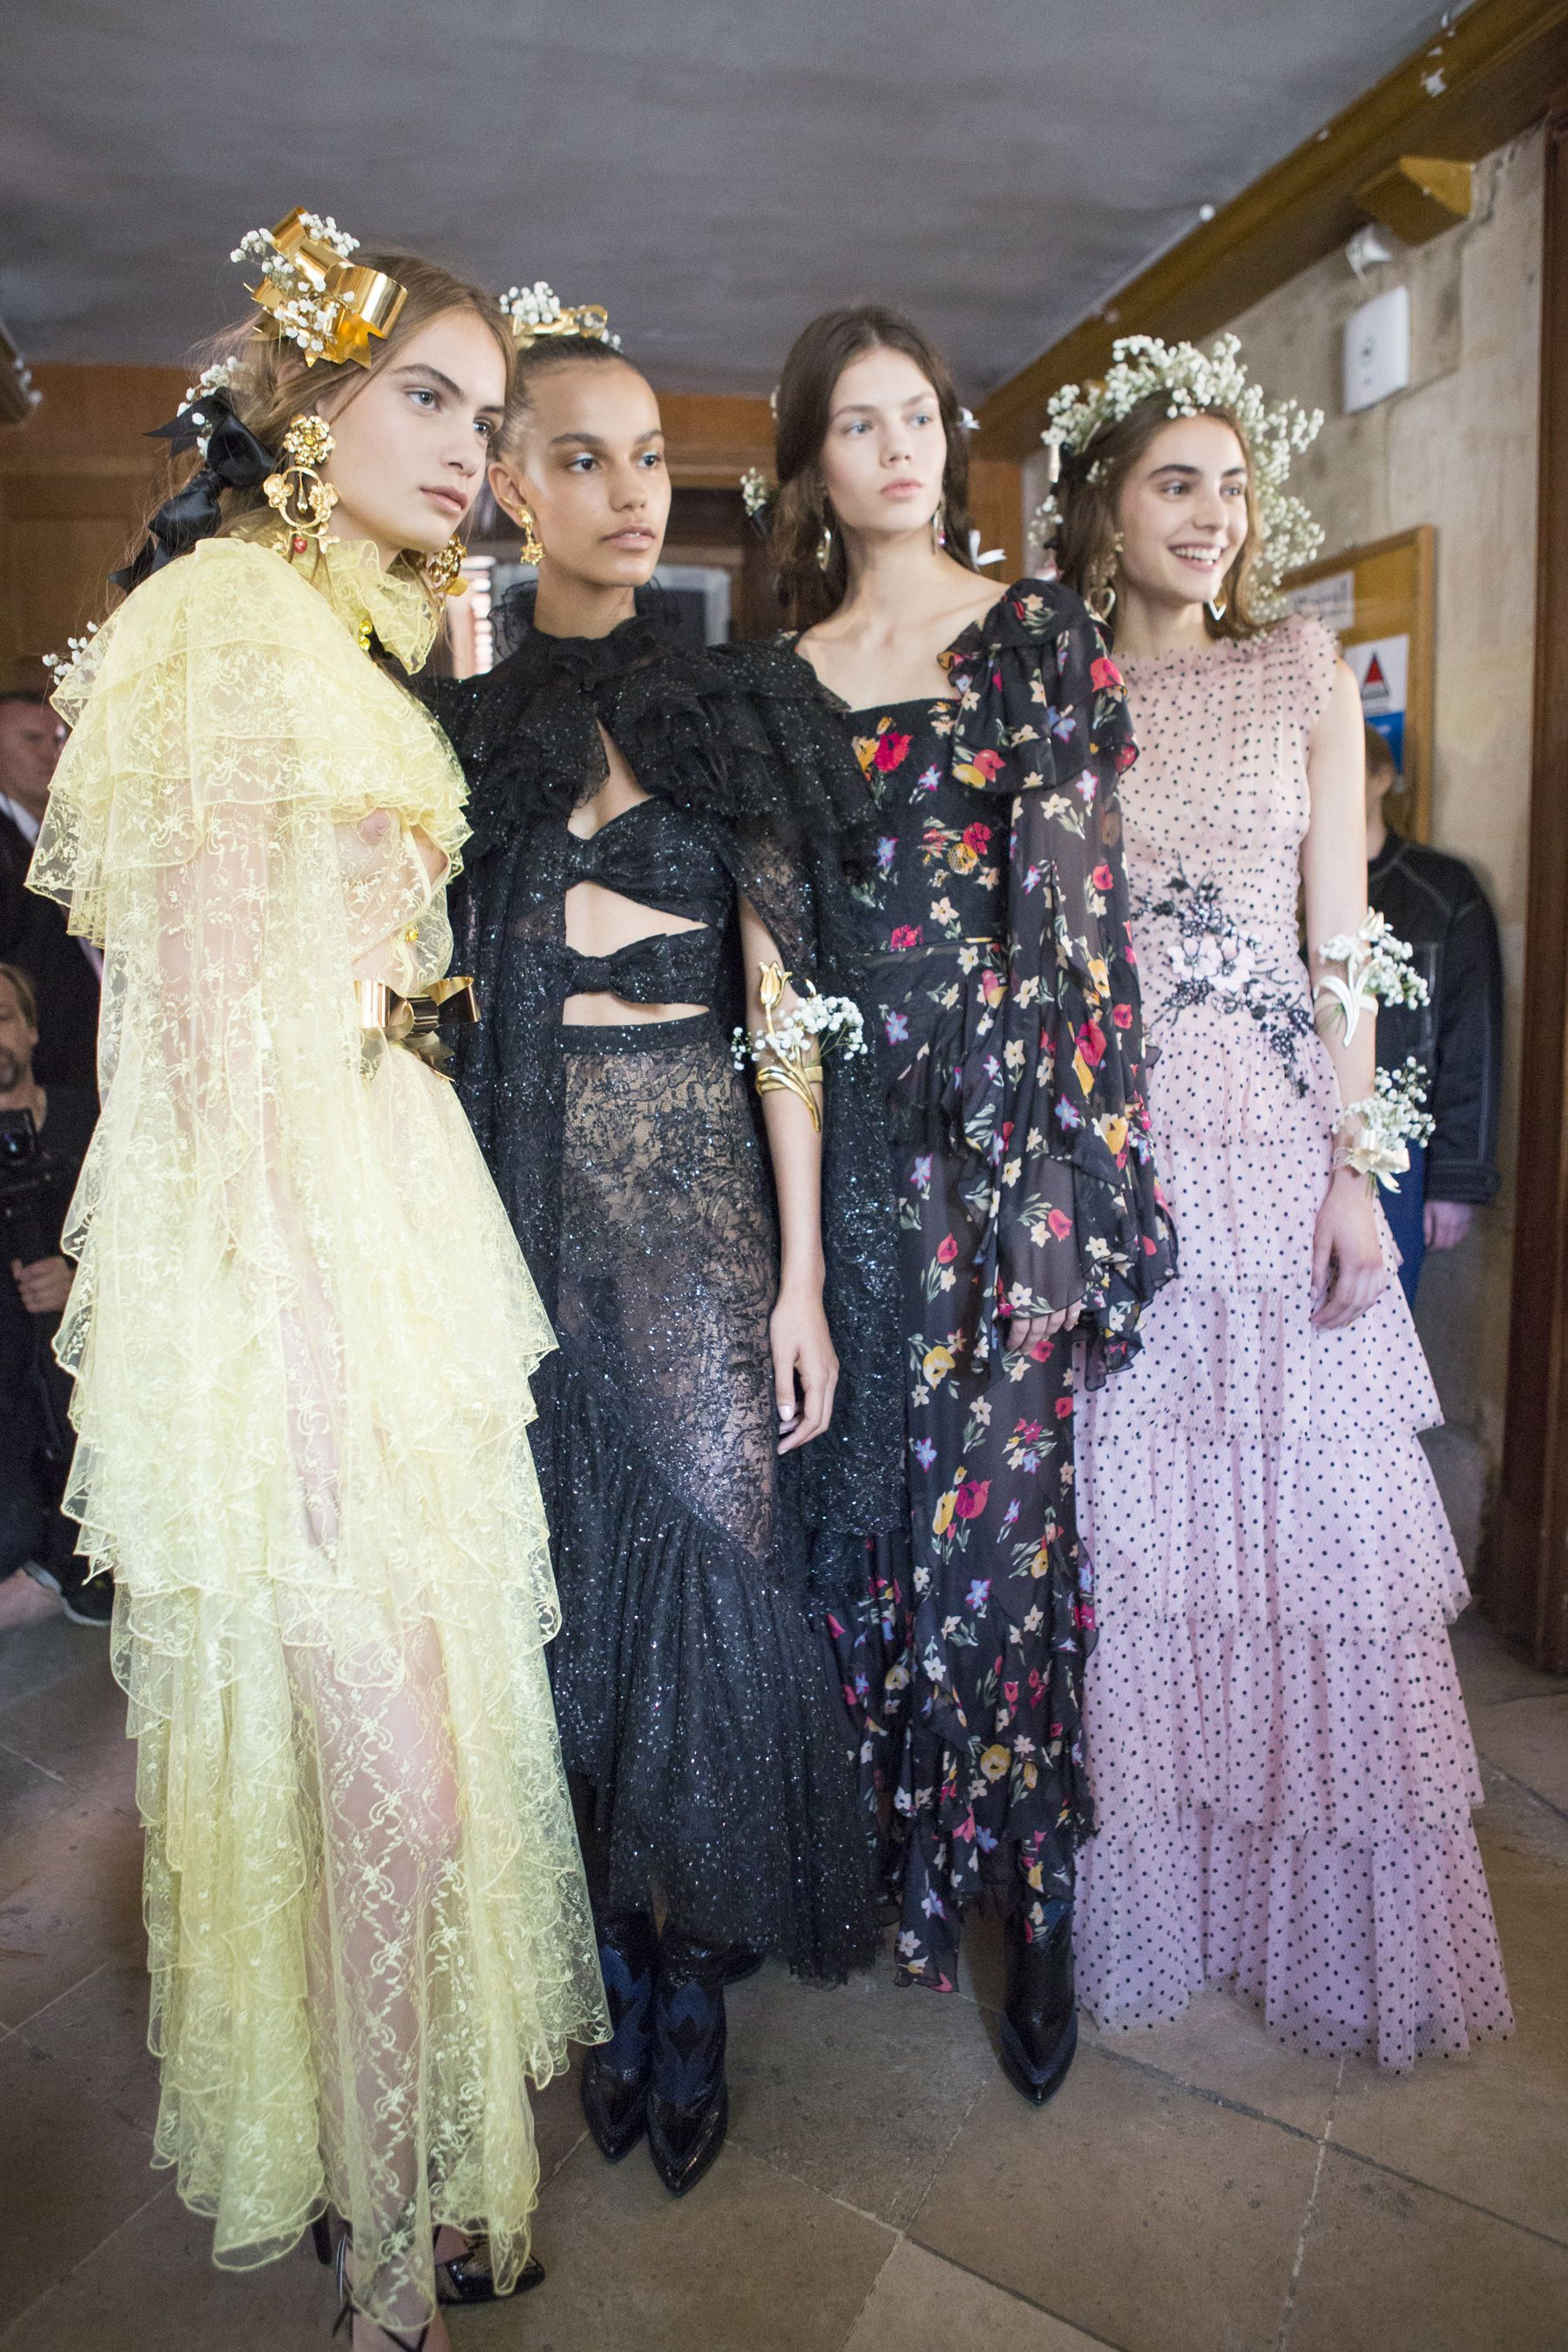 Rodarte Spring 2018 Fashion Show Backstage, Runway, Collections at  TheImpression.com - Fashion news, street style, models, backstage,  accessories, and more 67e87e6c4c